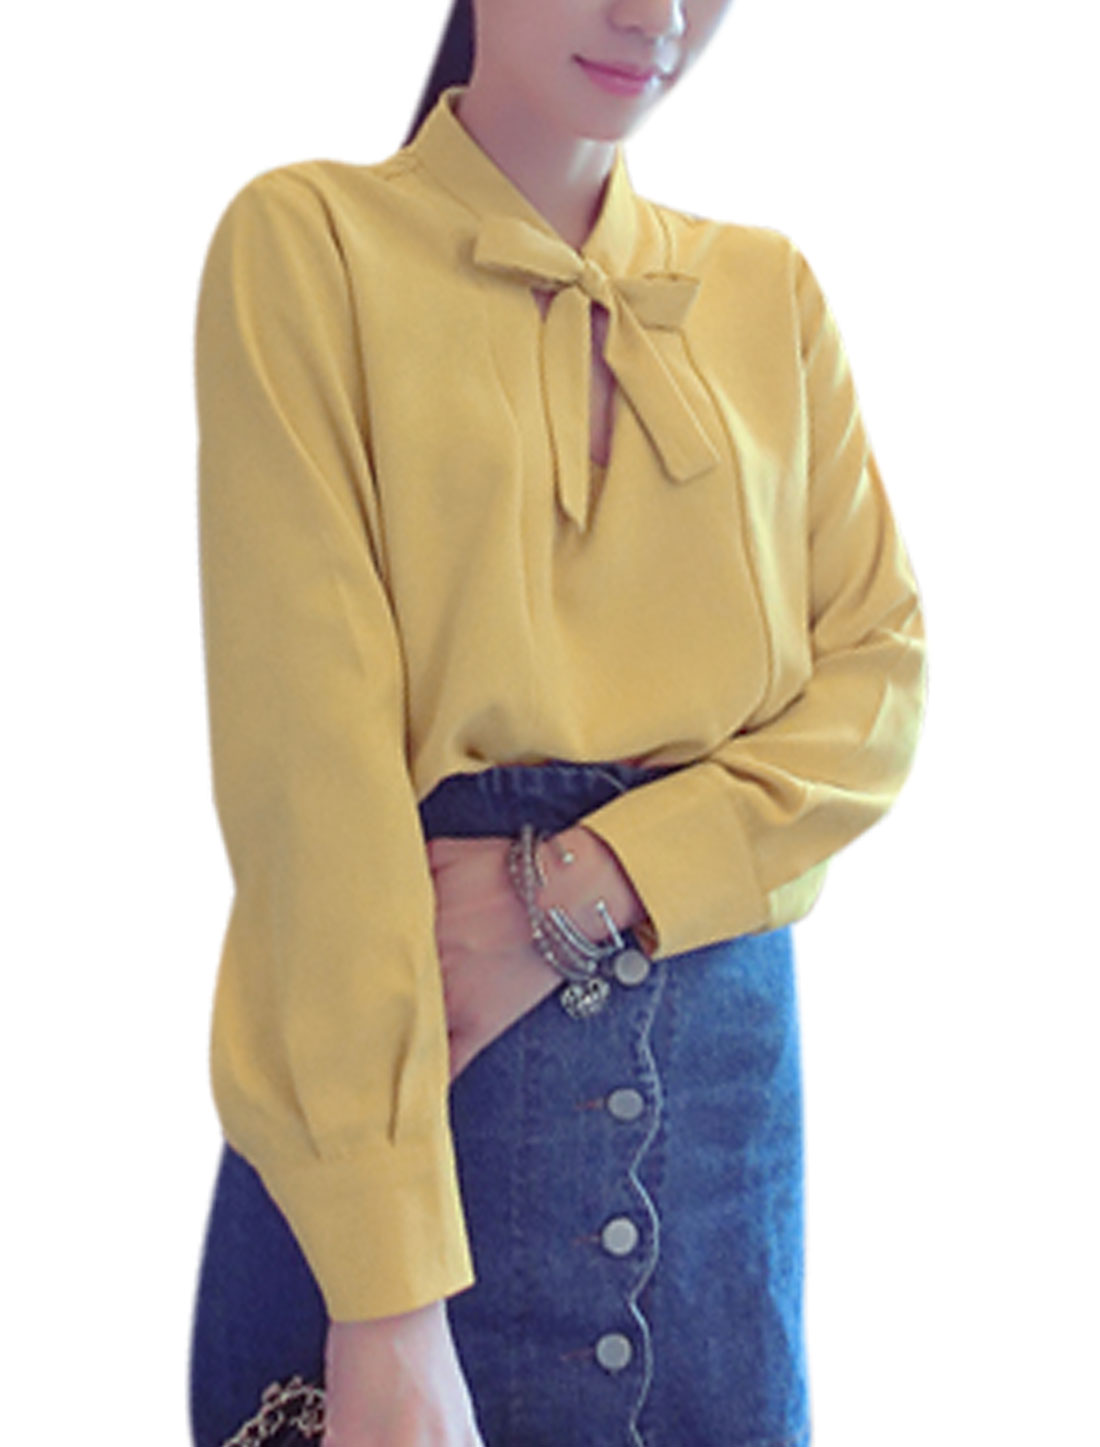 Lady Pullover Self Tie Neck Low Hight Hem Casual Blouse Ochre S